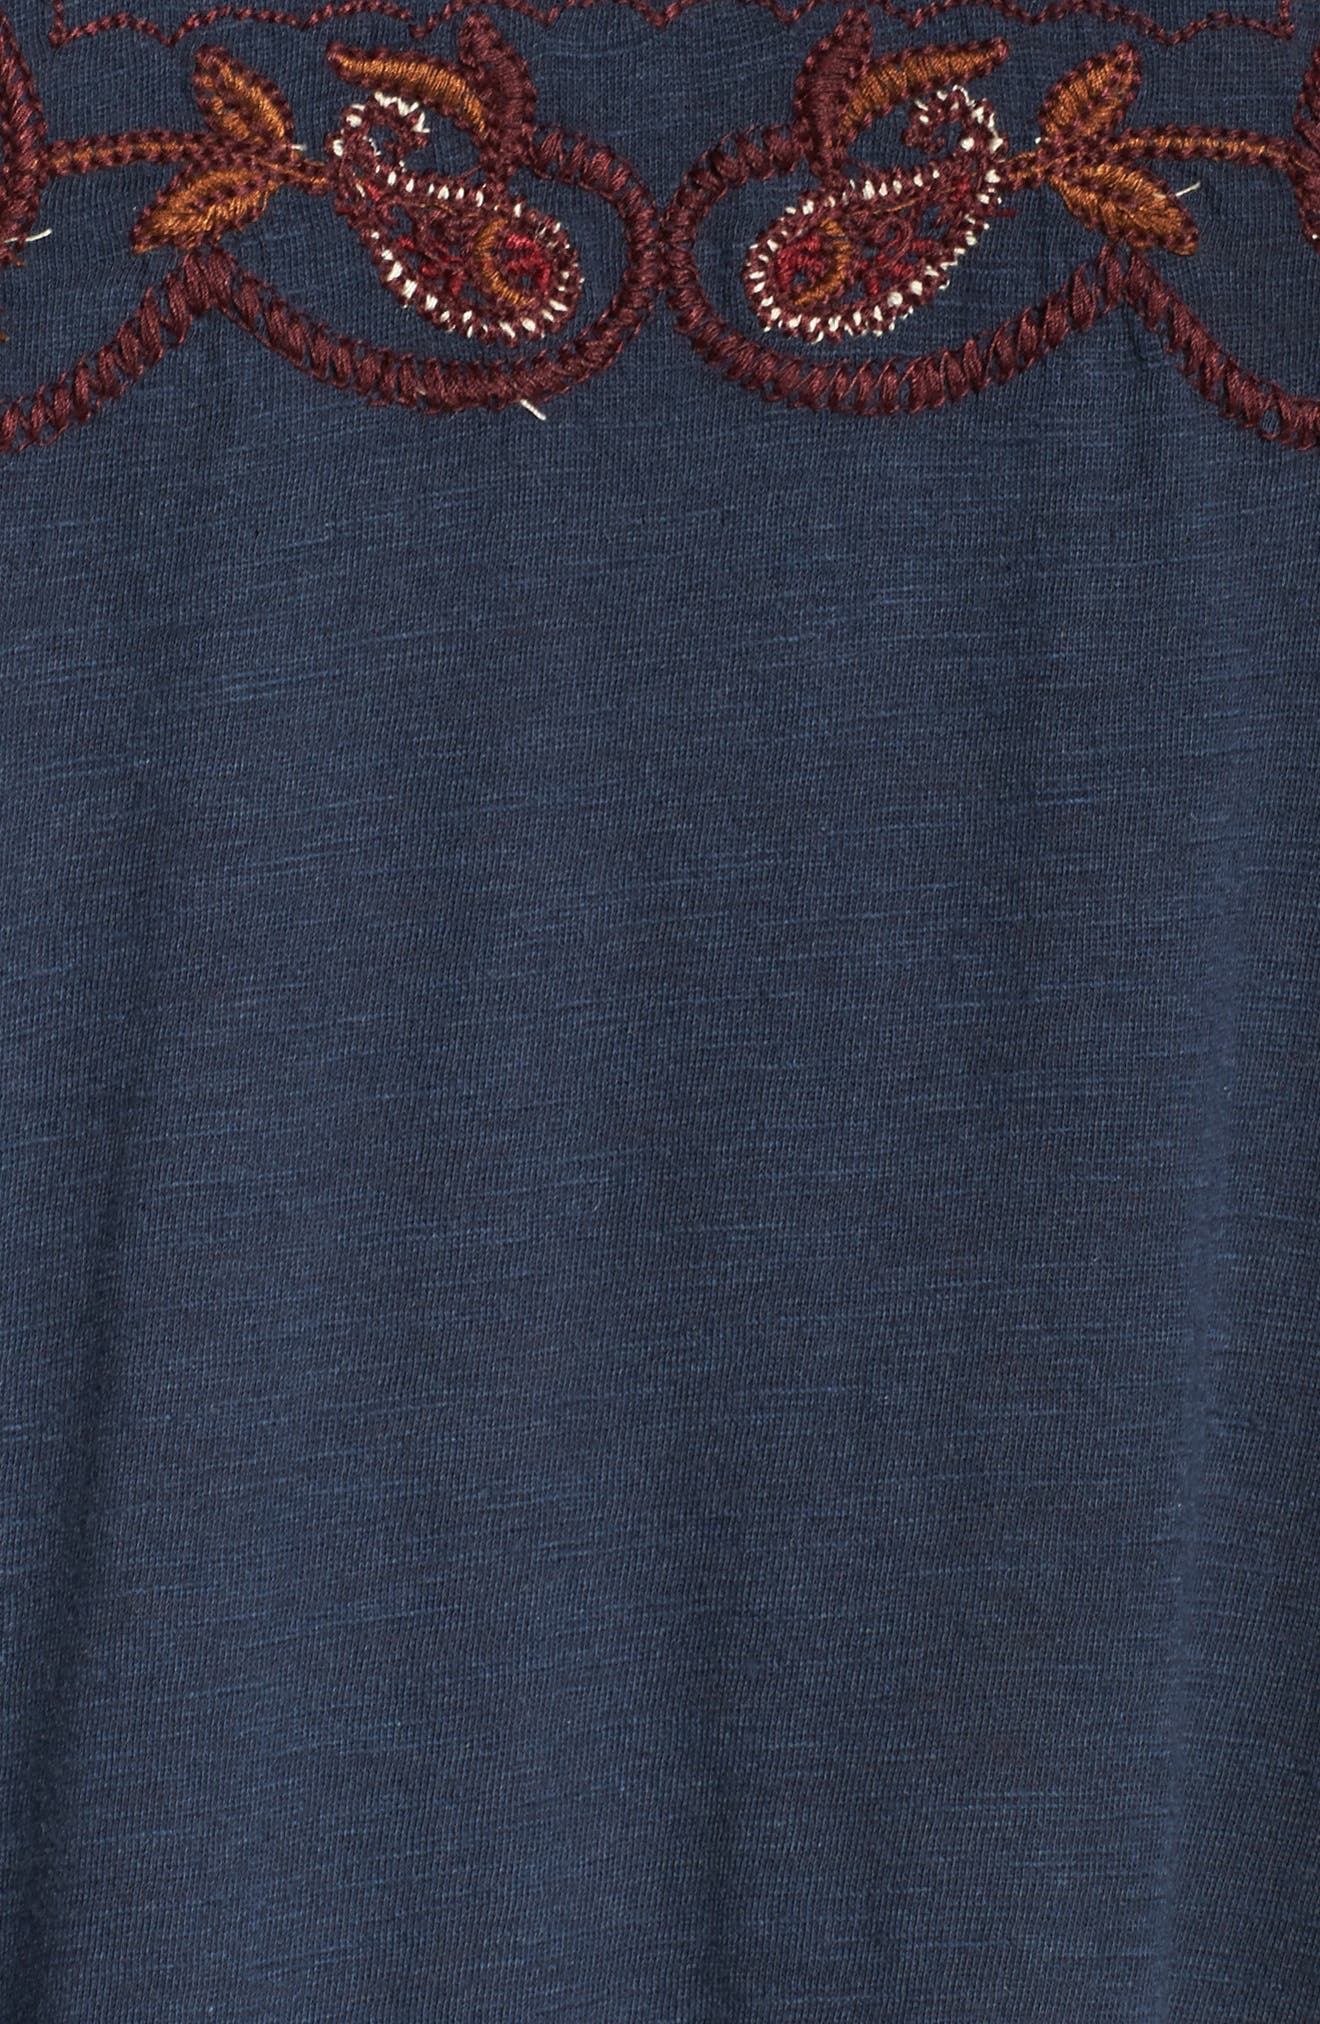 Lace Up Embroidered Peasant Top,                             Alternate thumbnail 5, color,                             410